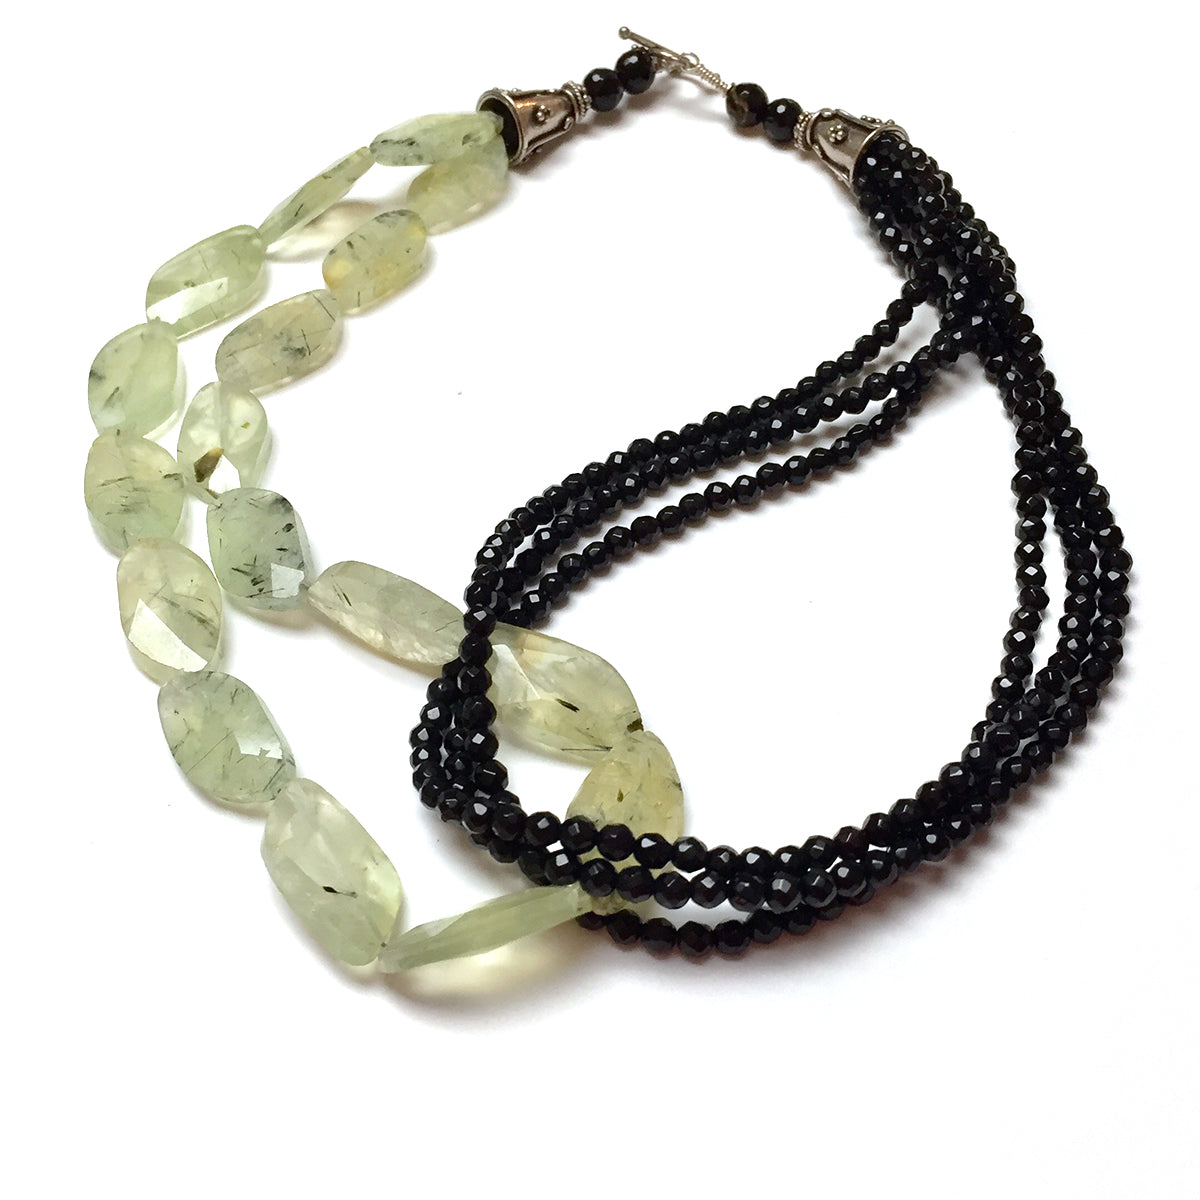 STERLING SILVER PREHNITE BLACK ONYX NECKLACE - DREAMSTONE TALISMAN